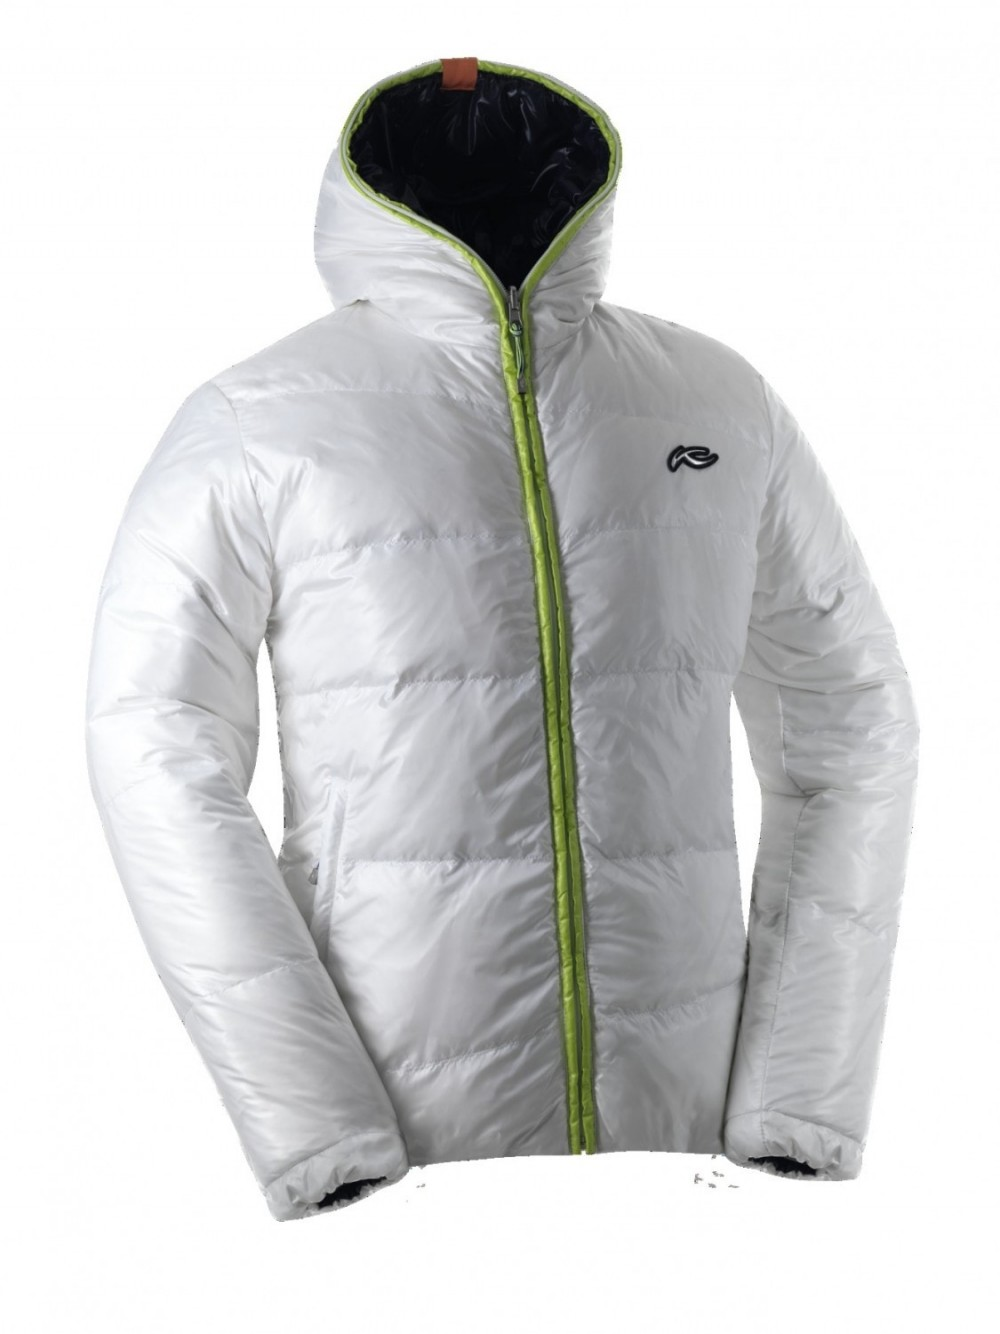 Куртка KJUS spin down jacket (размер XL) - 1